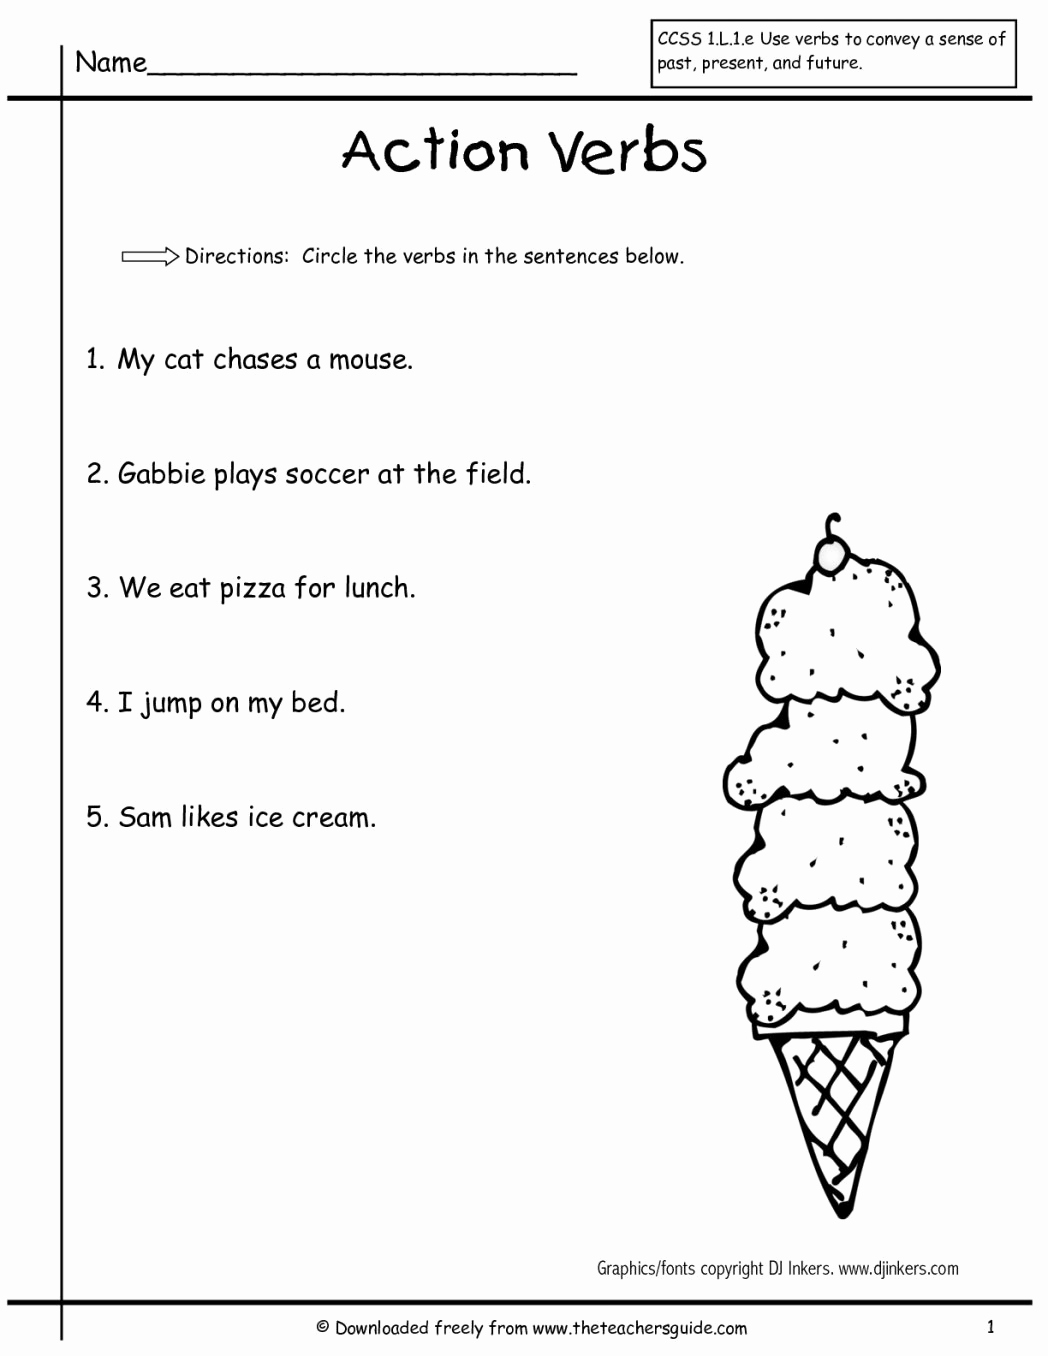 Verb Worksheets Beautiful Verb Worksheets For First Grade